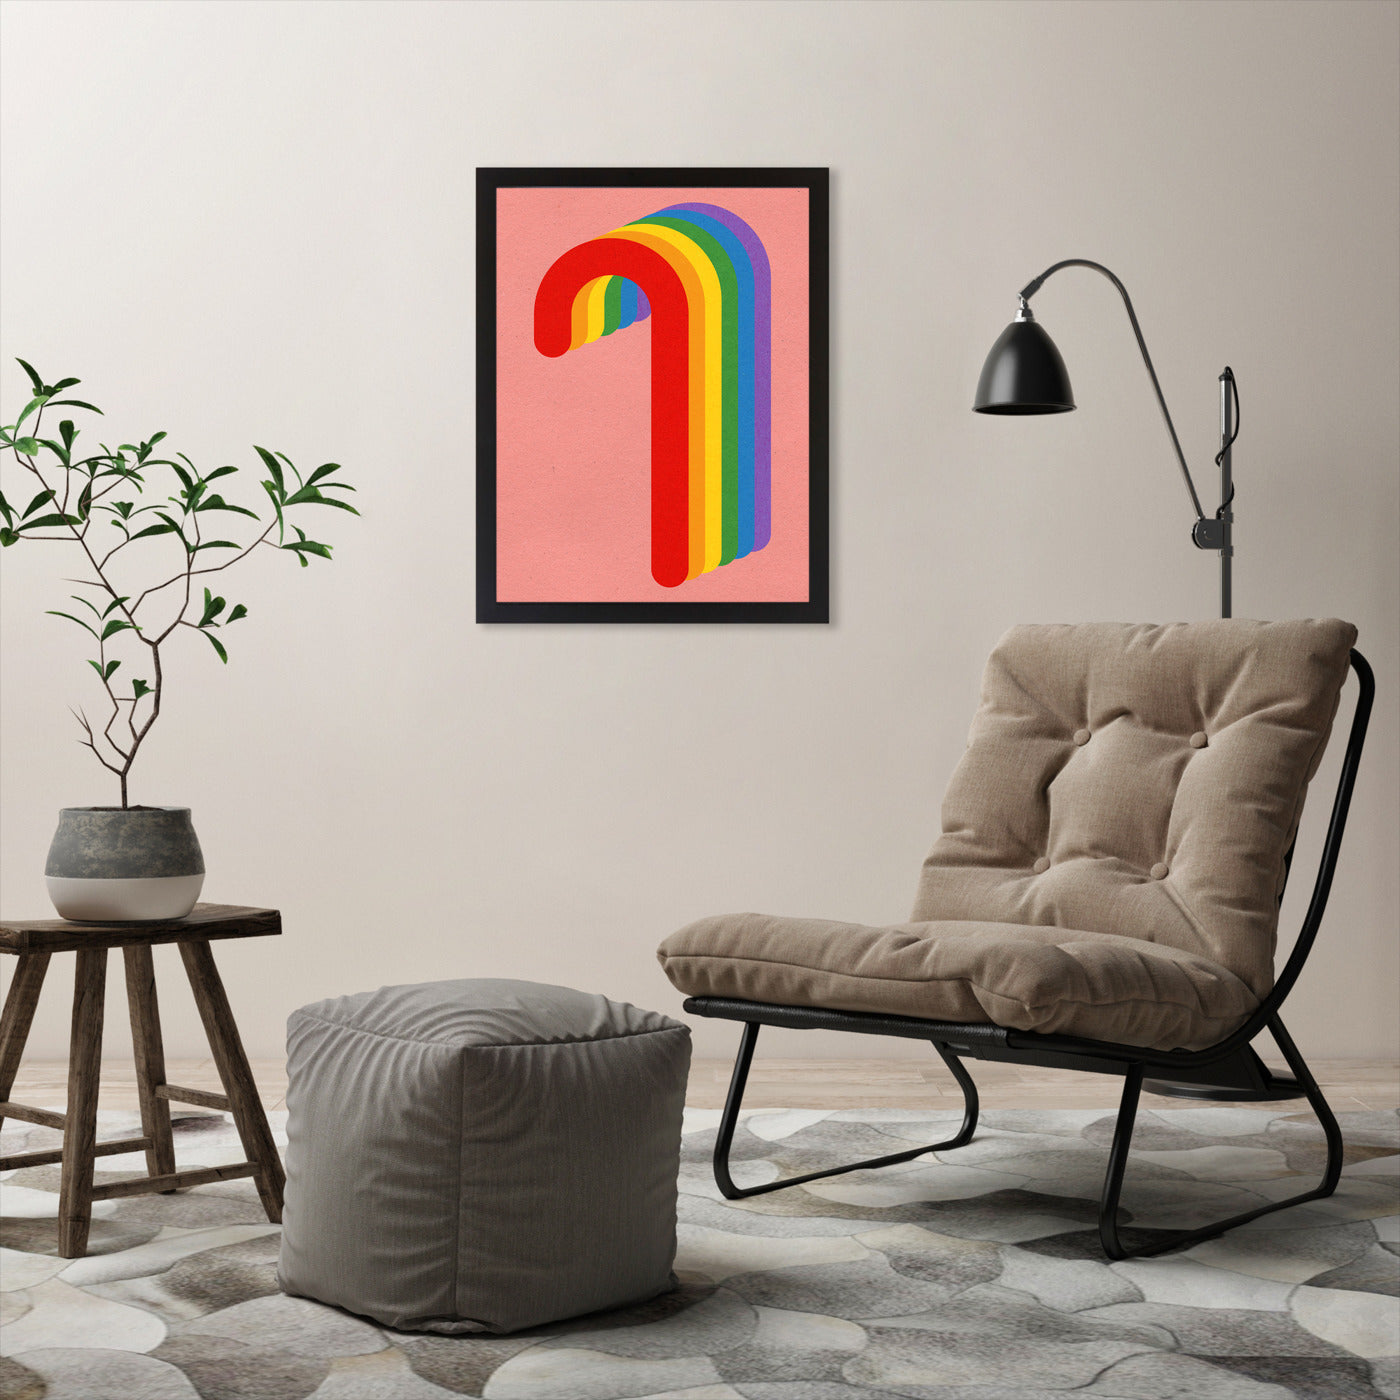 Rainbow Candy Cane by Rosi Feist - Black Framed Print - Wall Art - Americanflat